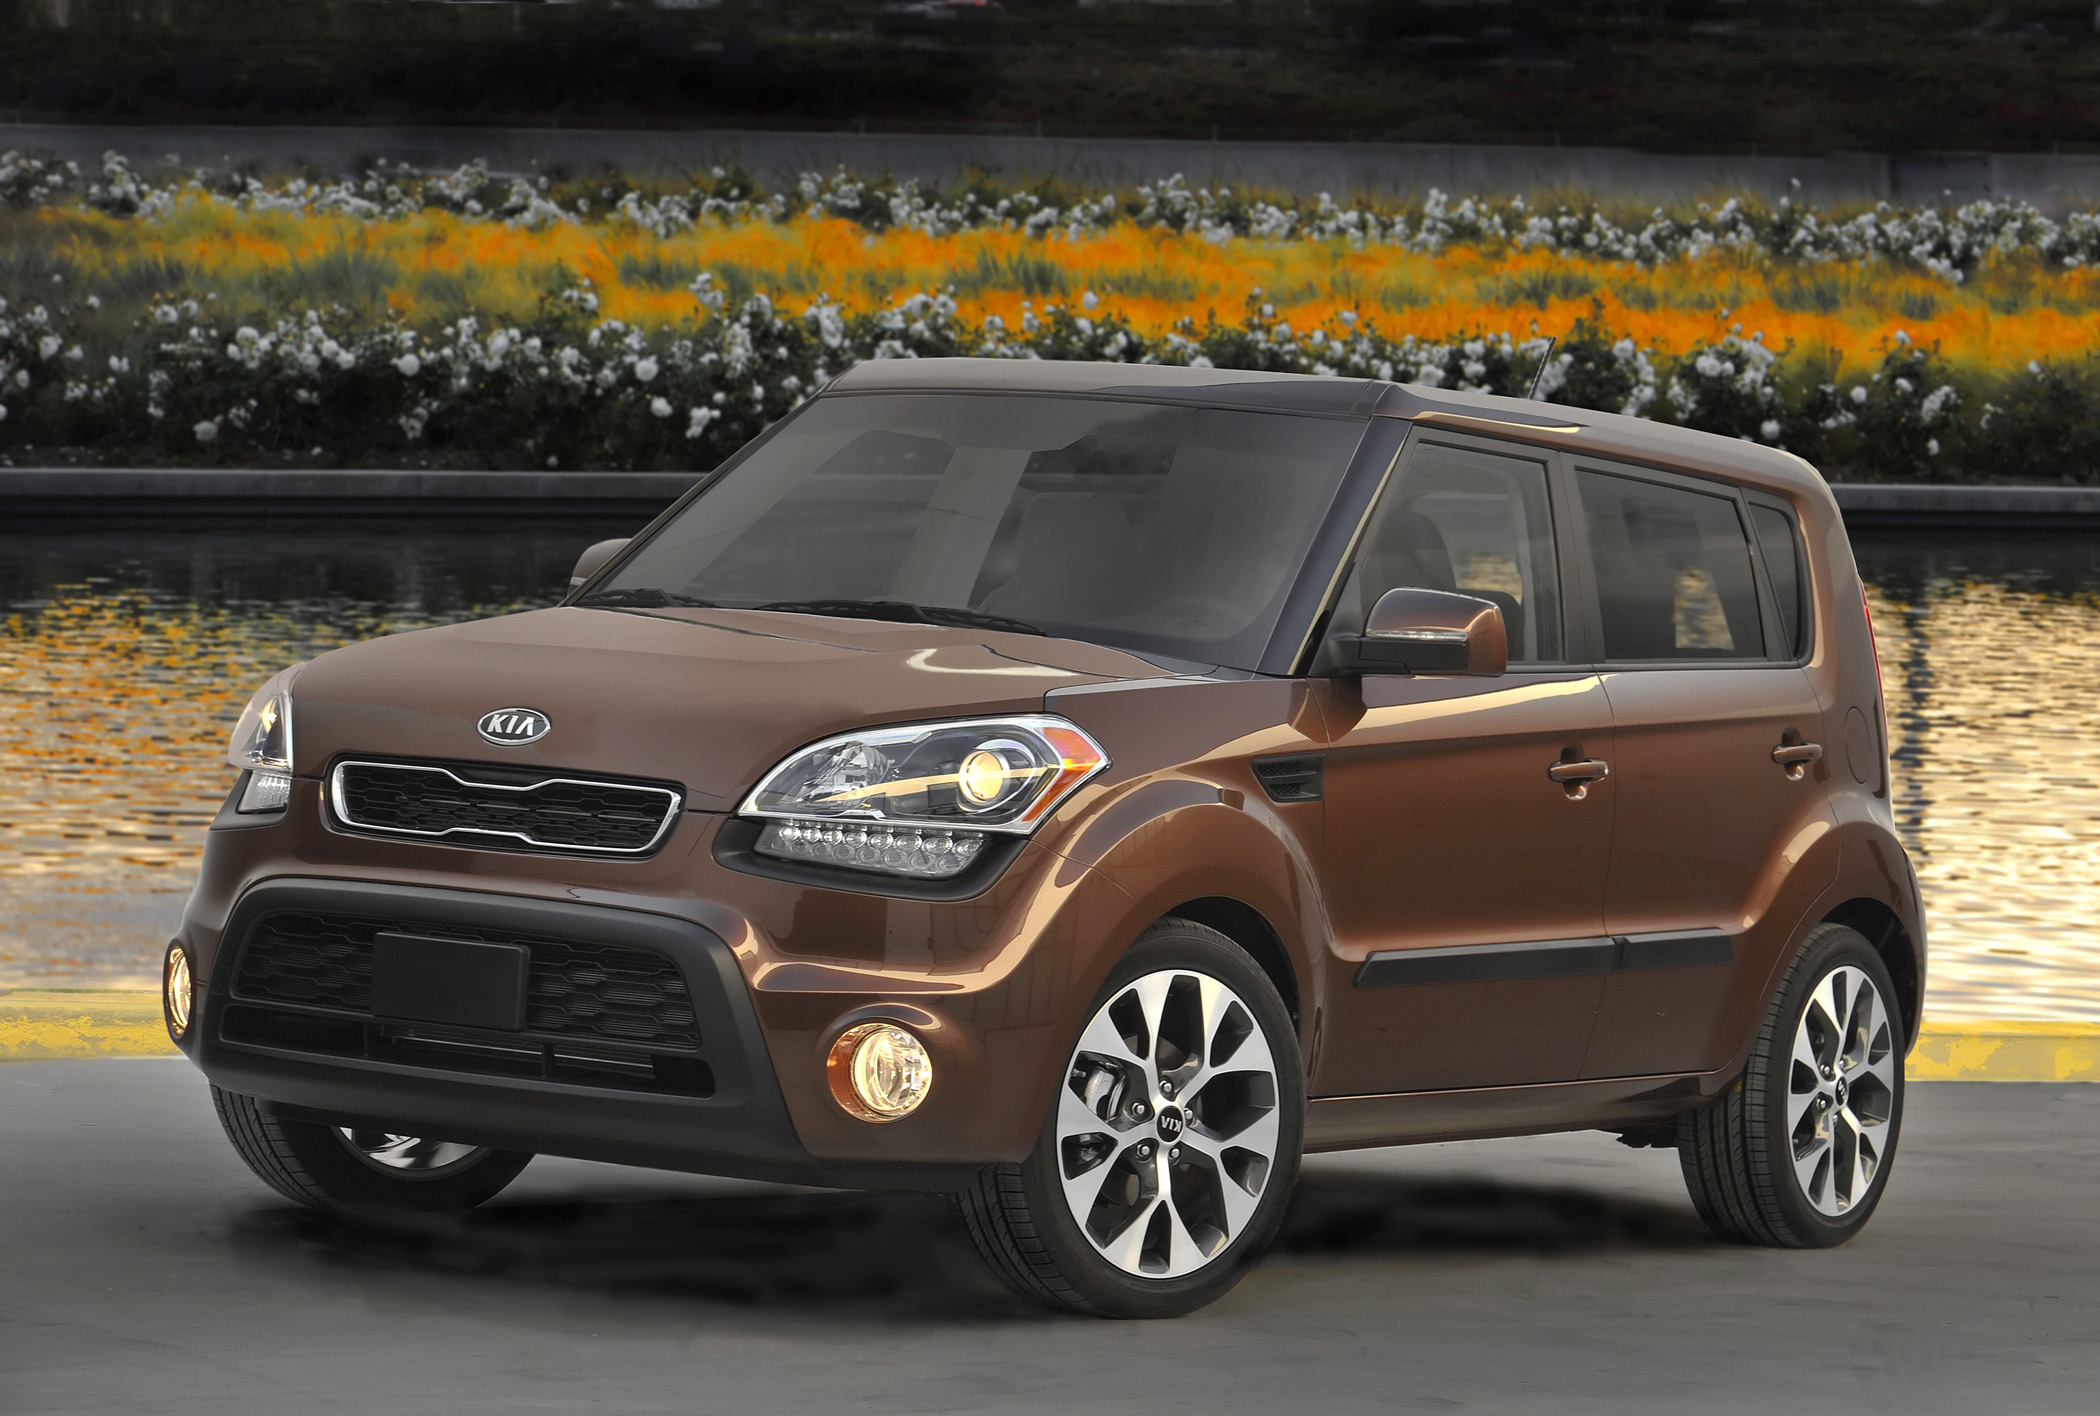 Manufacturer photo: The Kia Soul hatchback enters the 2012 model year with a fresh and updated look and more power